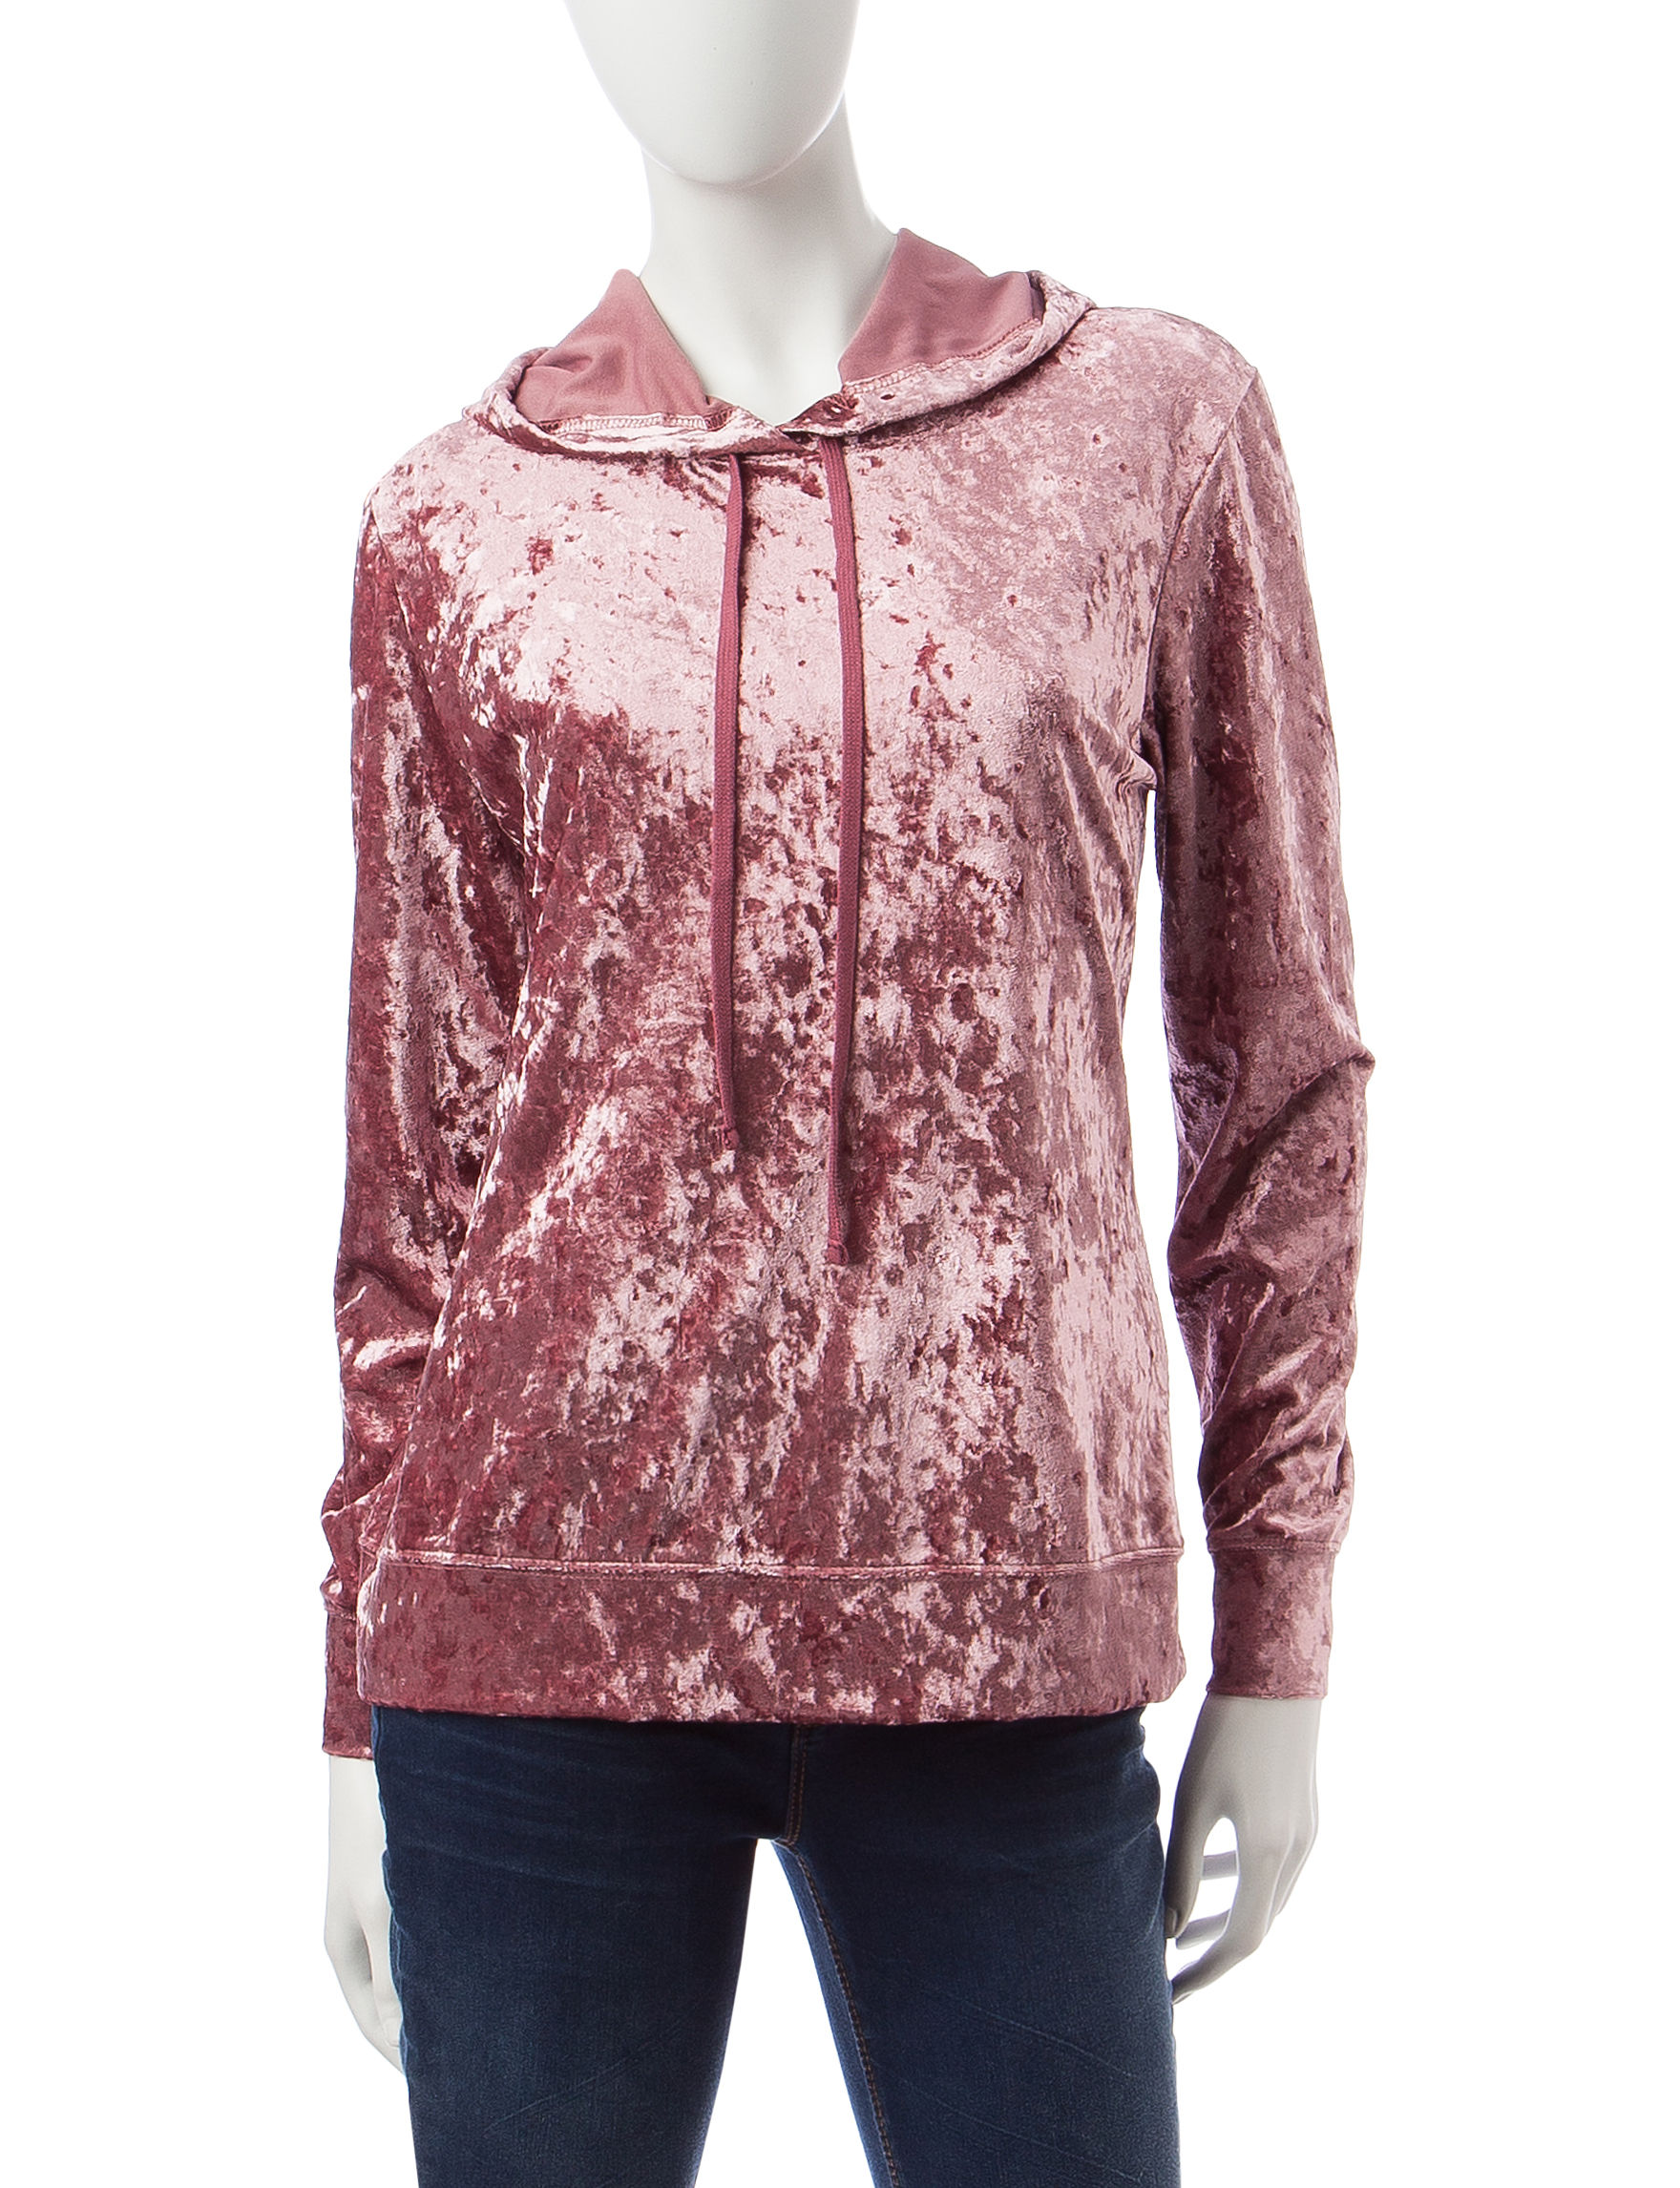 Signature Studio Pink Fleece & Soft Shell Jackets Shirts & Blouses